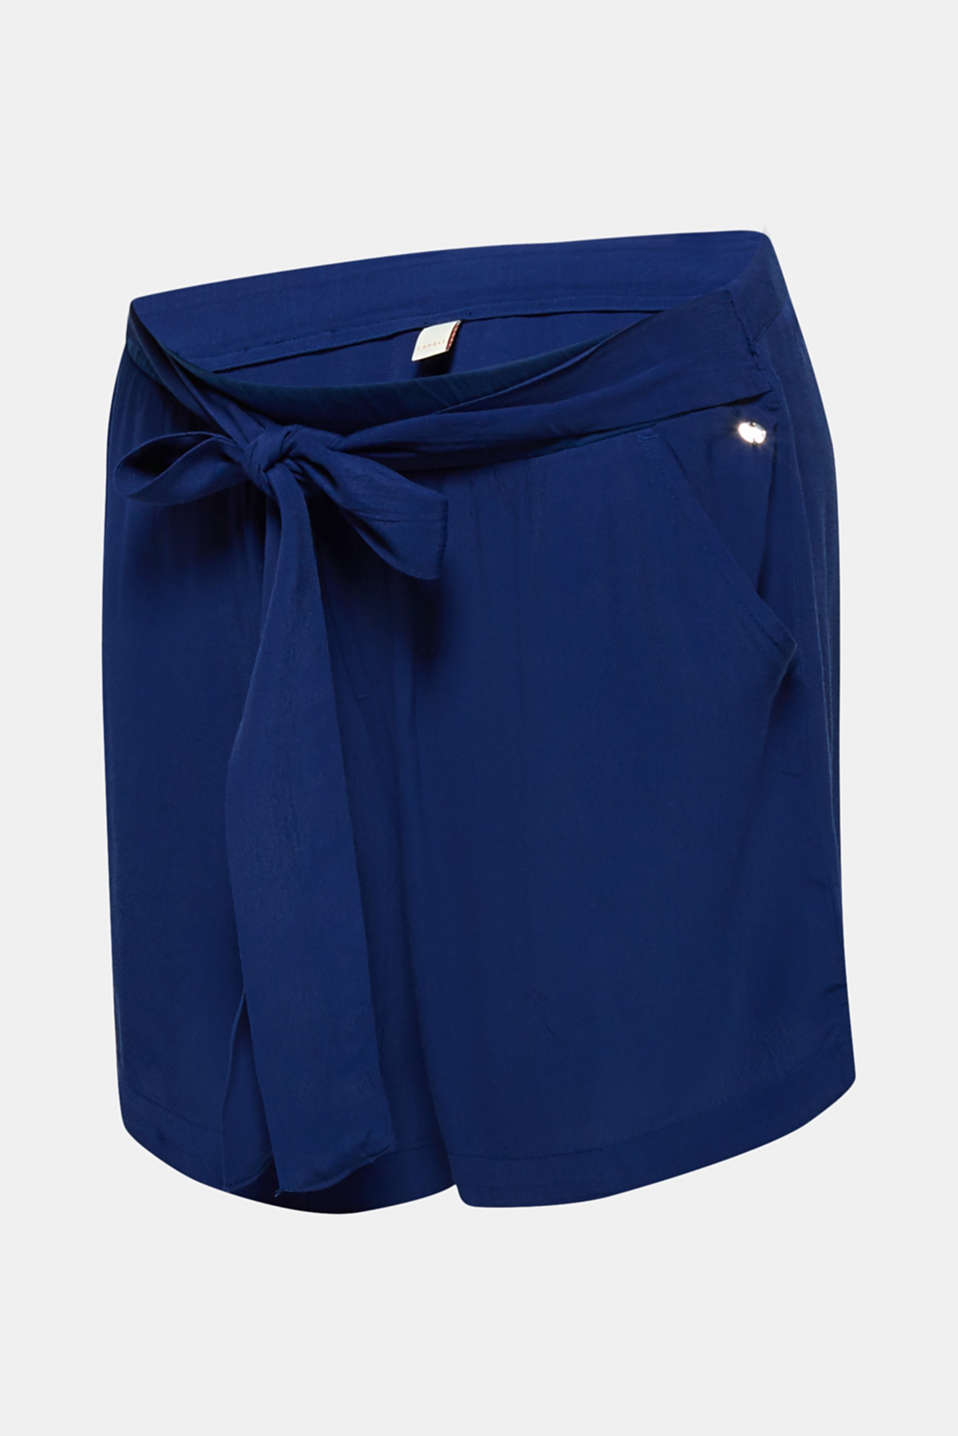 Crêpe shorts with a tie-around belt and under-bump waistband, LCDARK BLUE, detail image number 7